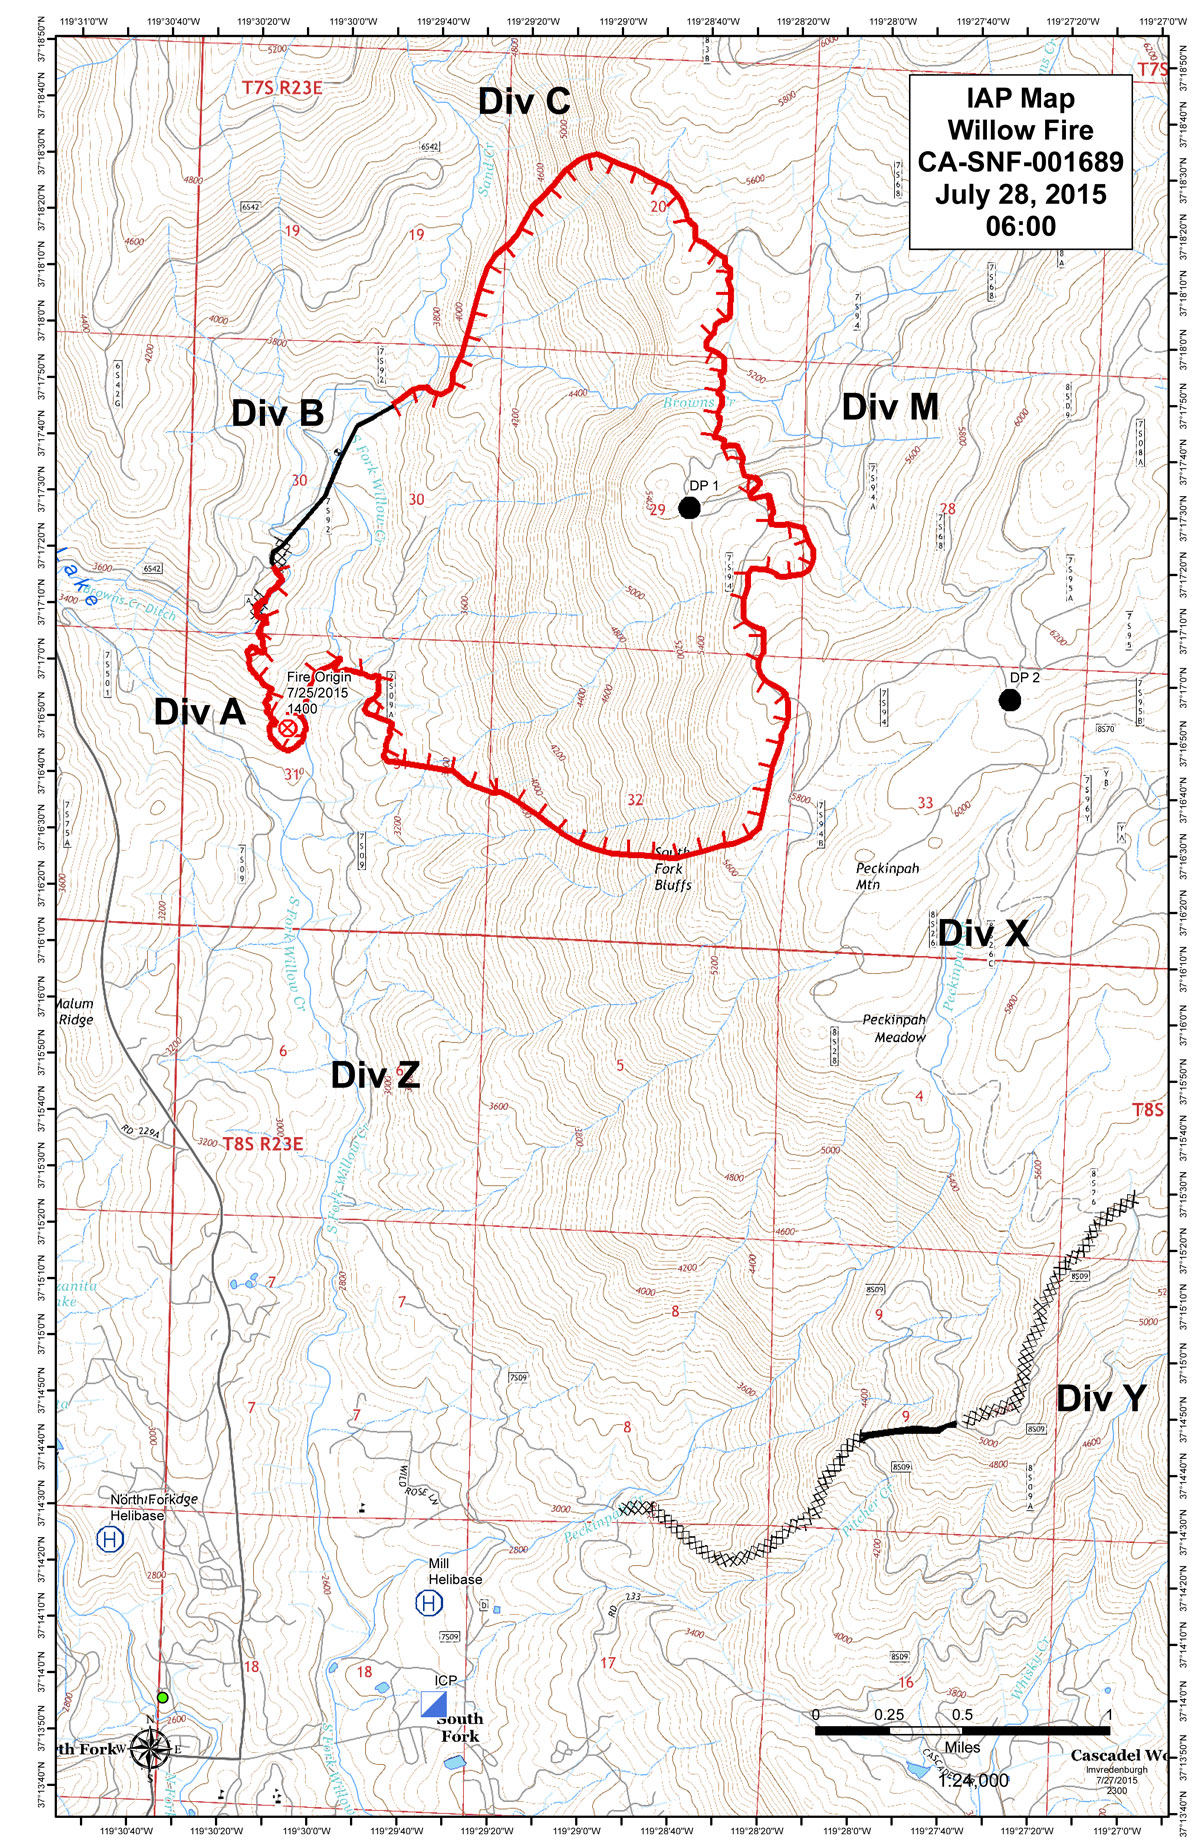 Willow Fire Map In Madera County Near Bass Lake For July 28, 2015 - Bass Lake California Map